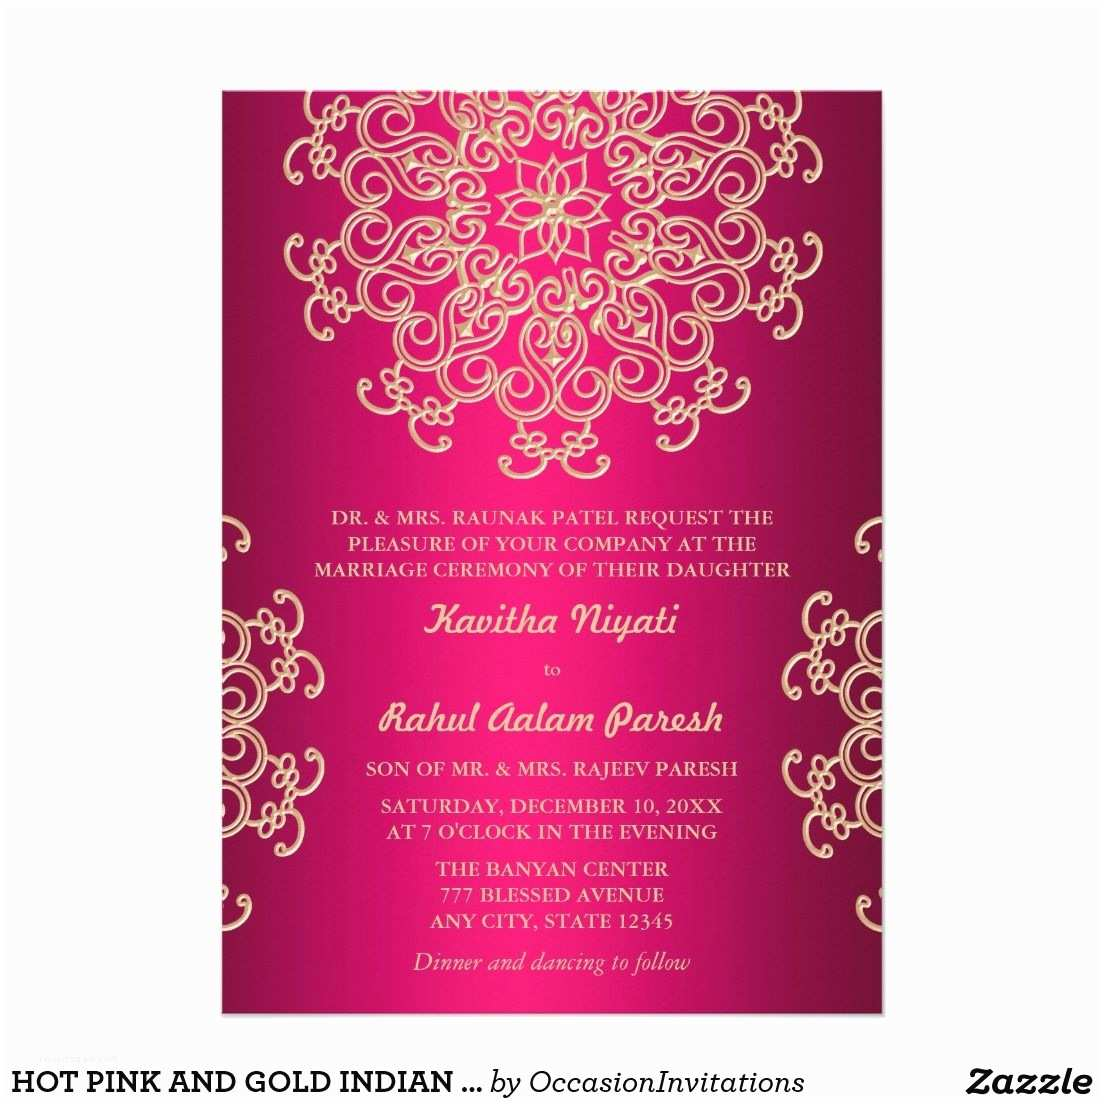 Tagline for Wedding Invitation Hot Pink and Gold Indian Style Wedding Invitation